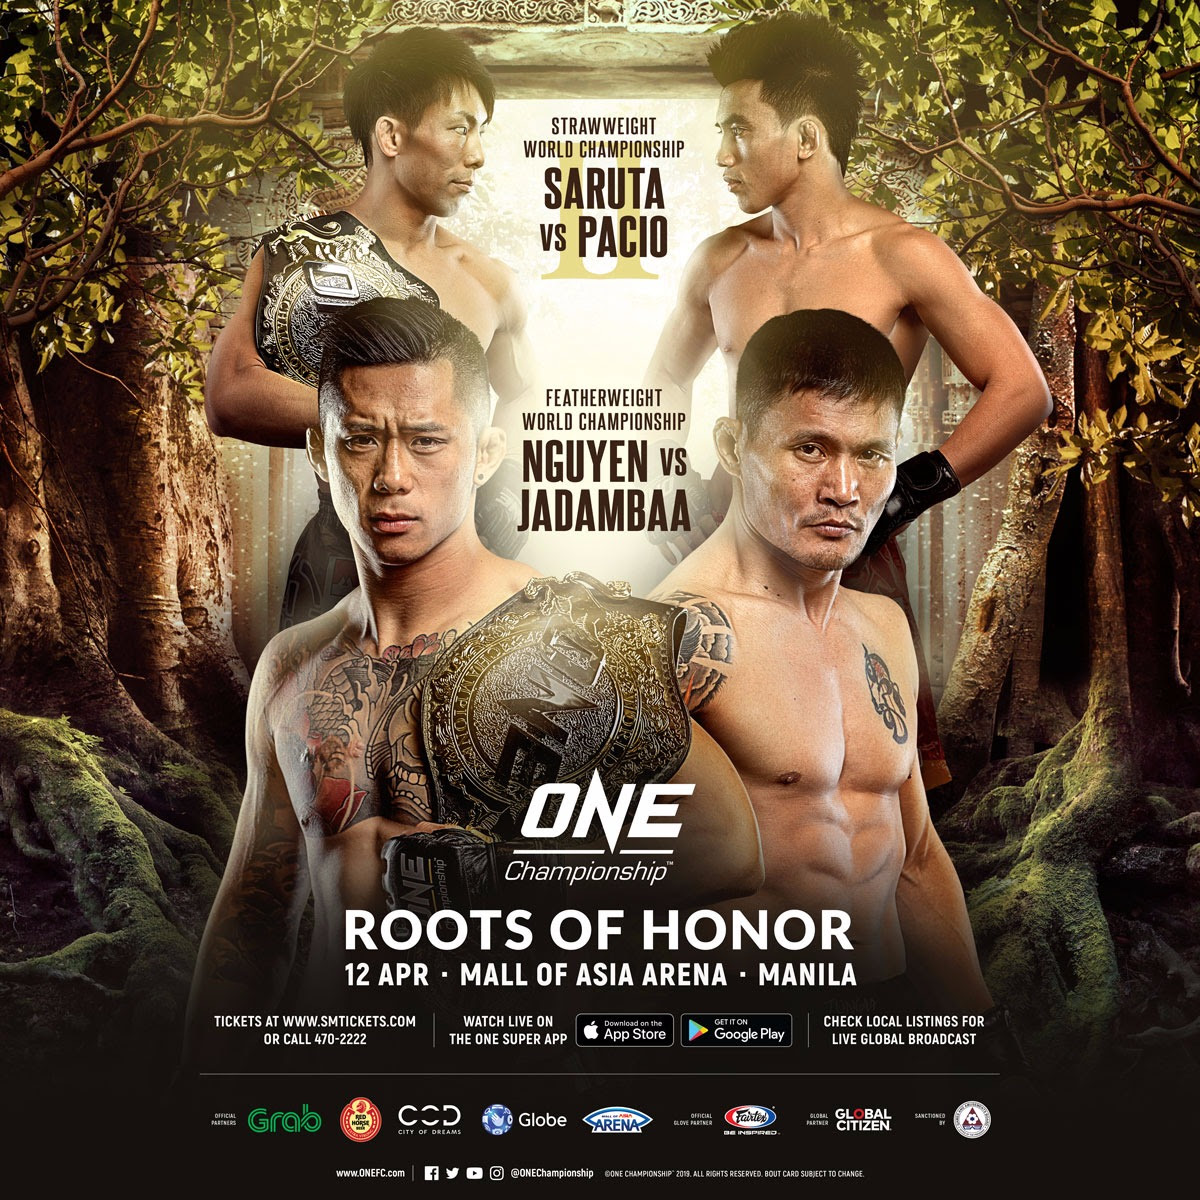 MARTIN NGUYEN TO DEFEND ONE FEATHERWEIGHT WORLD TITLE AGAINST NARANTUNGALAG JADAMBAA AT ONE: ROOTS OF HONOR IN MANILA -